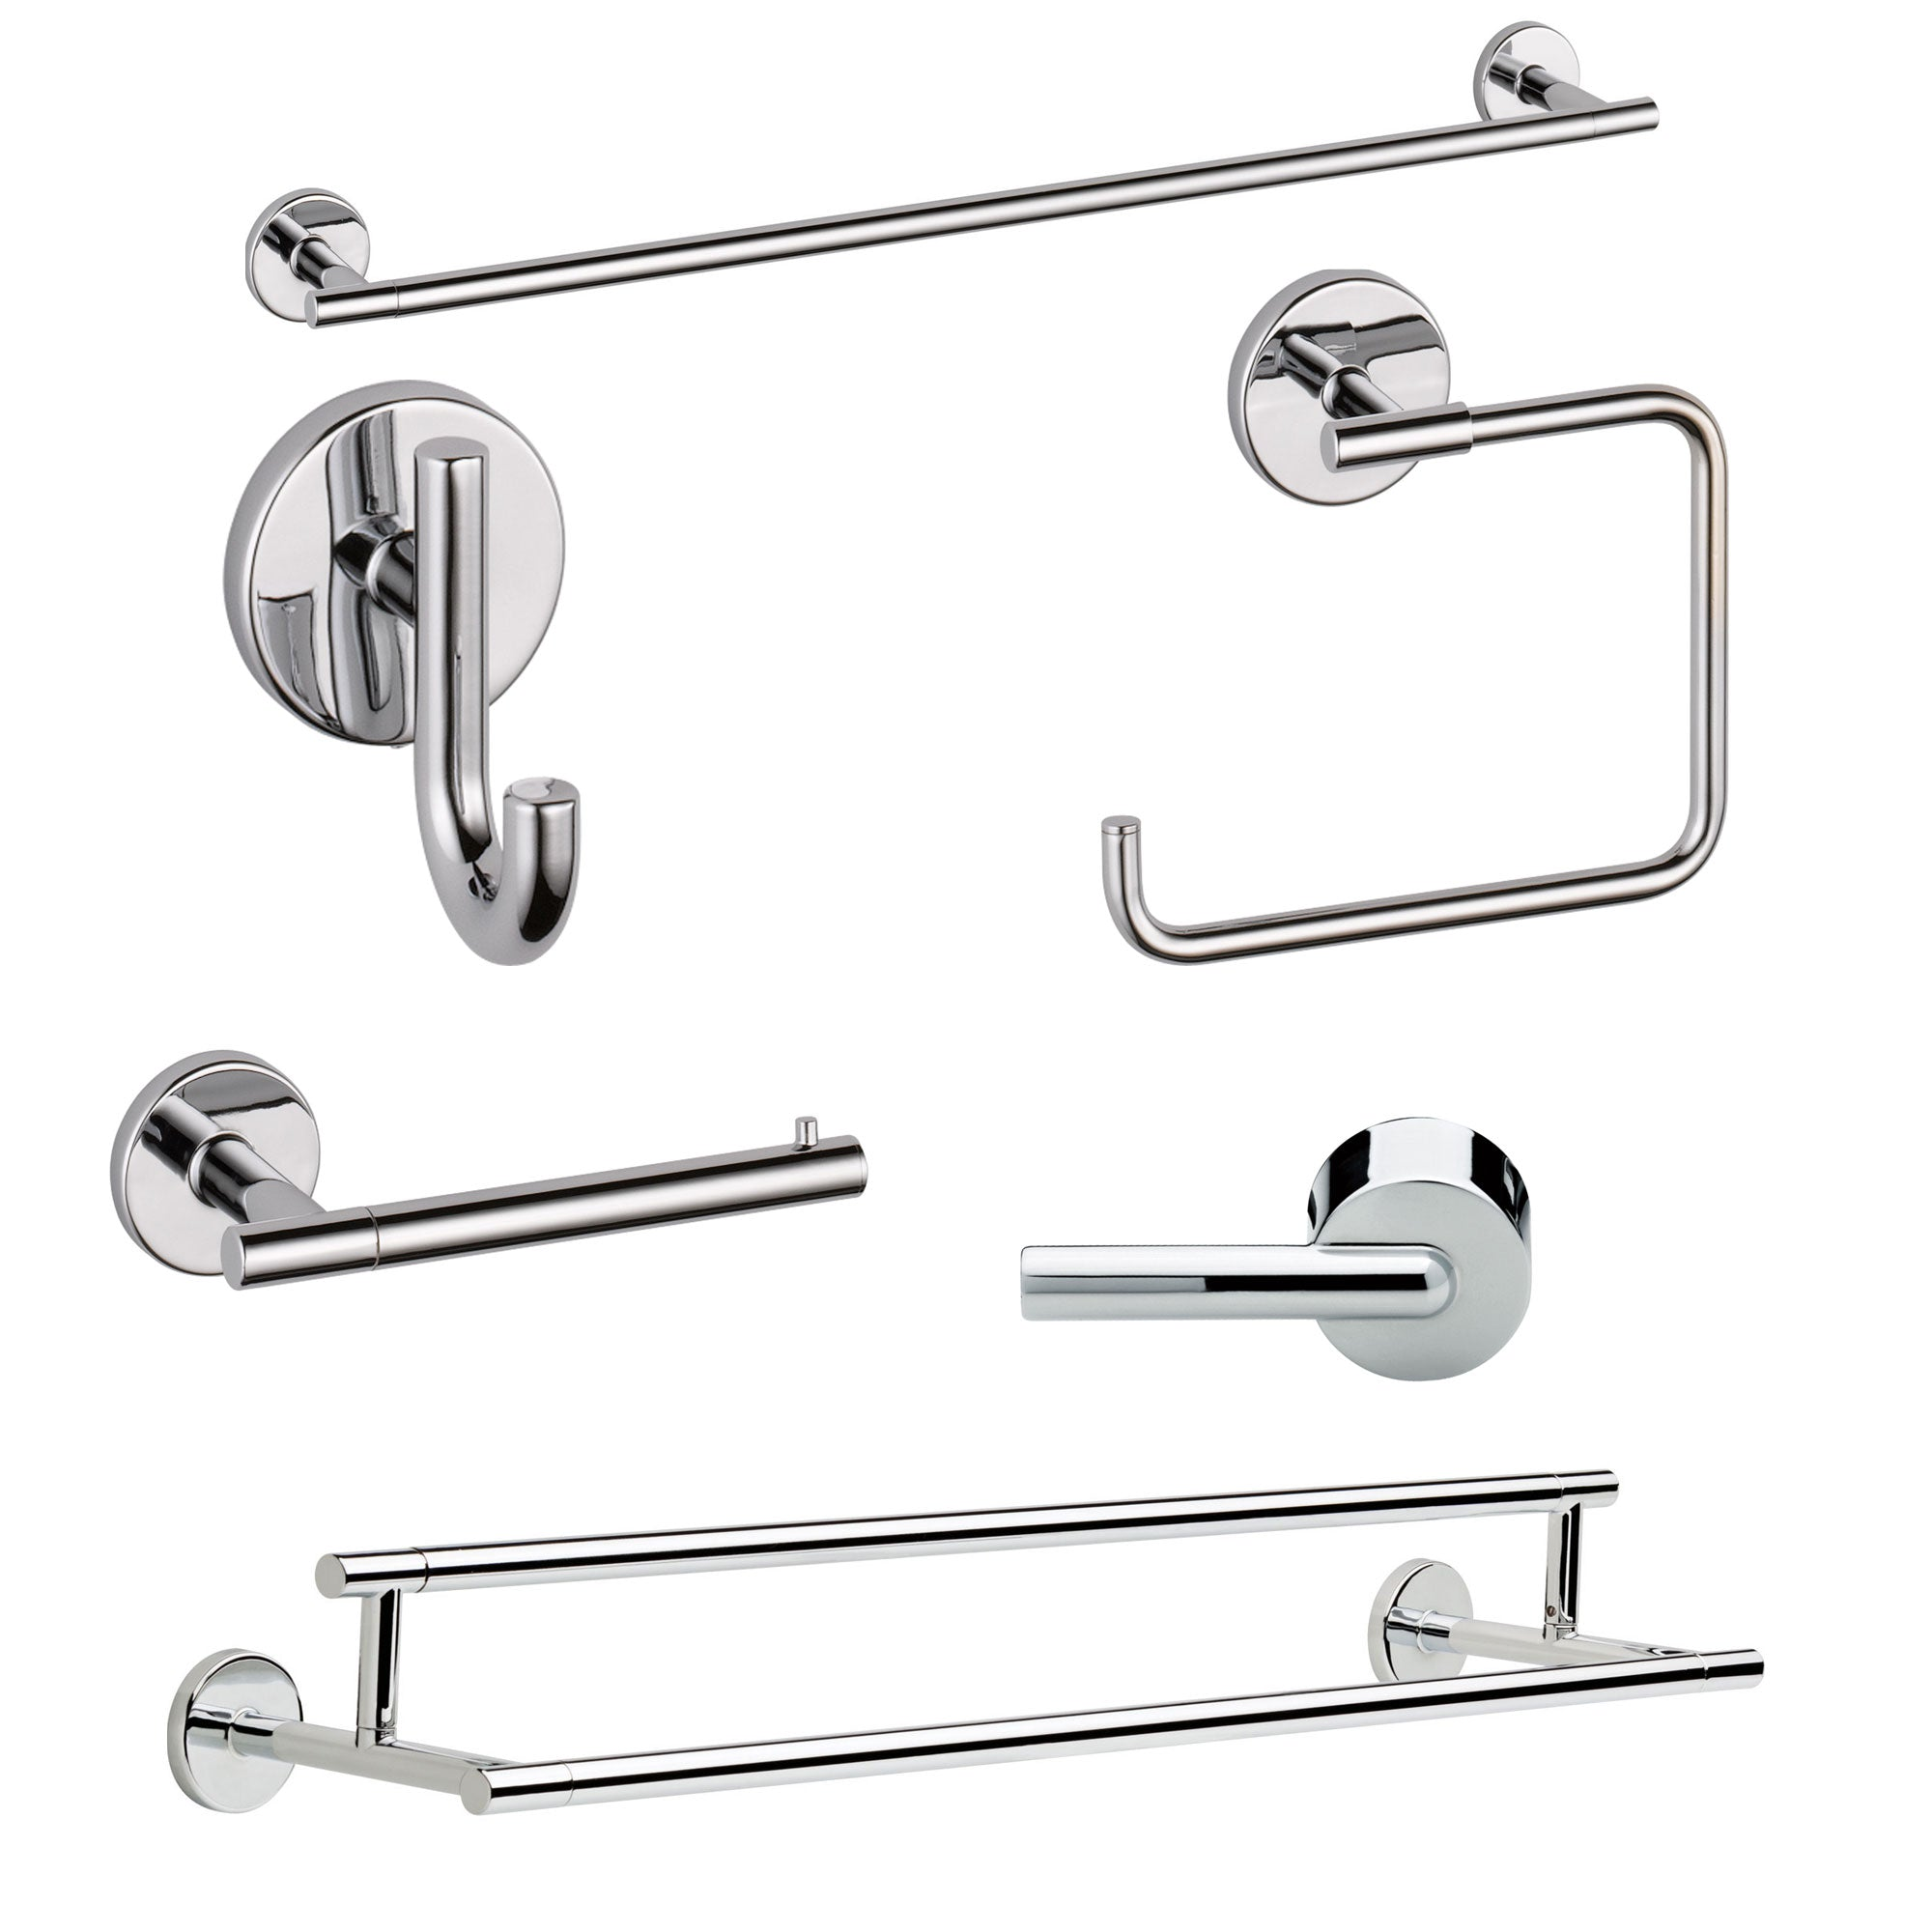 "Delta Trinsic Chrome DELUXE Accessory Set Includes: 24"" Towel Bar, Paper Holder, Towel Ring, Robe Hook, Tank Lever, & 24"" Double Towel Bar D10003AP"